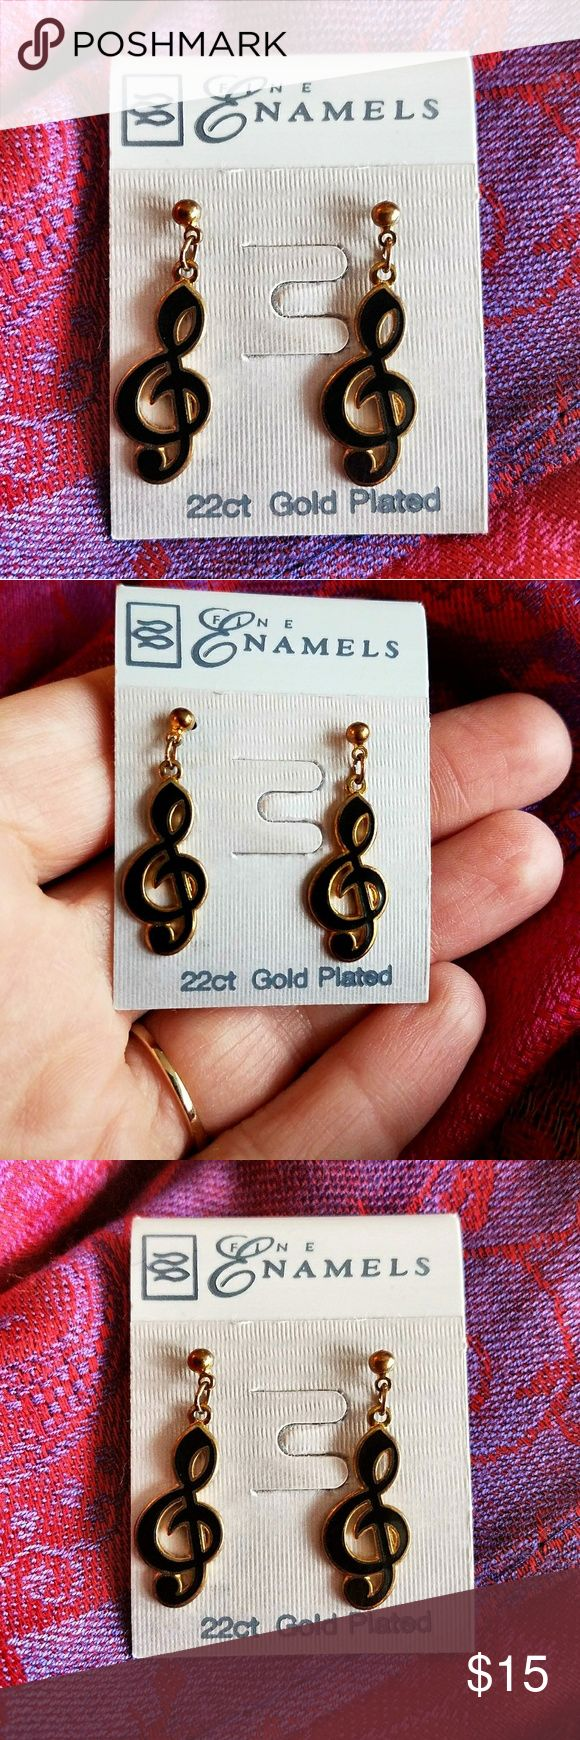 Vintage treble clef earrings gold drop music note This pretty pair of Treble Clef dangle earrings is still on the original card! They are made of 22kt gold plated metal with black enamel. Rubber stopper backs, pierced posts. They are in like new condition, never worn. By Fine Enamels. From a smoke free home:)  BeeA8858note9k6g Vintage Jewelry Earrings